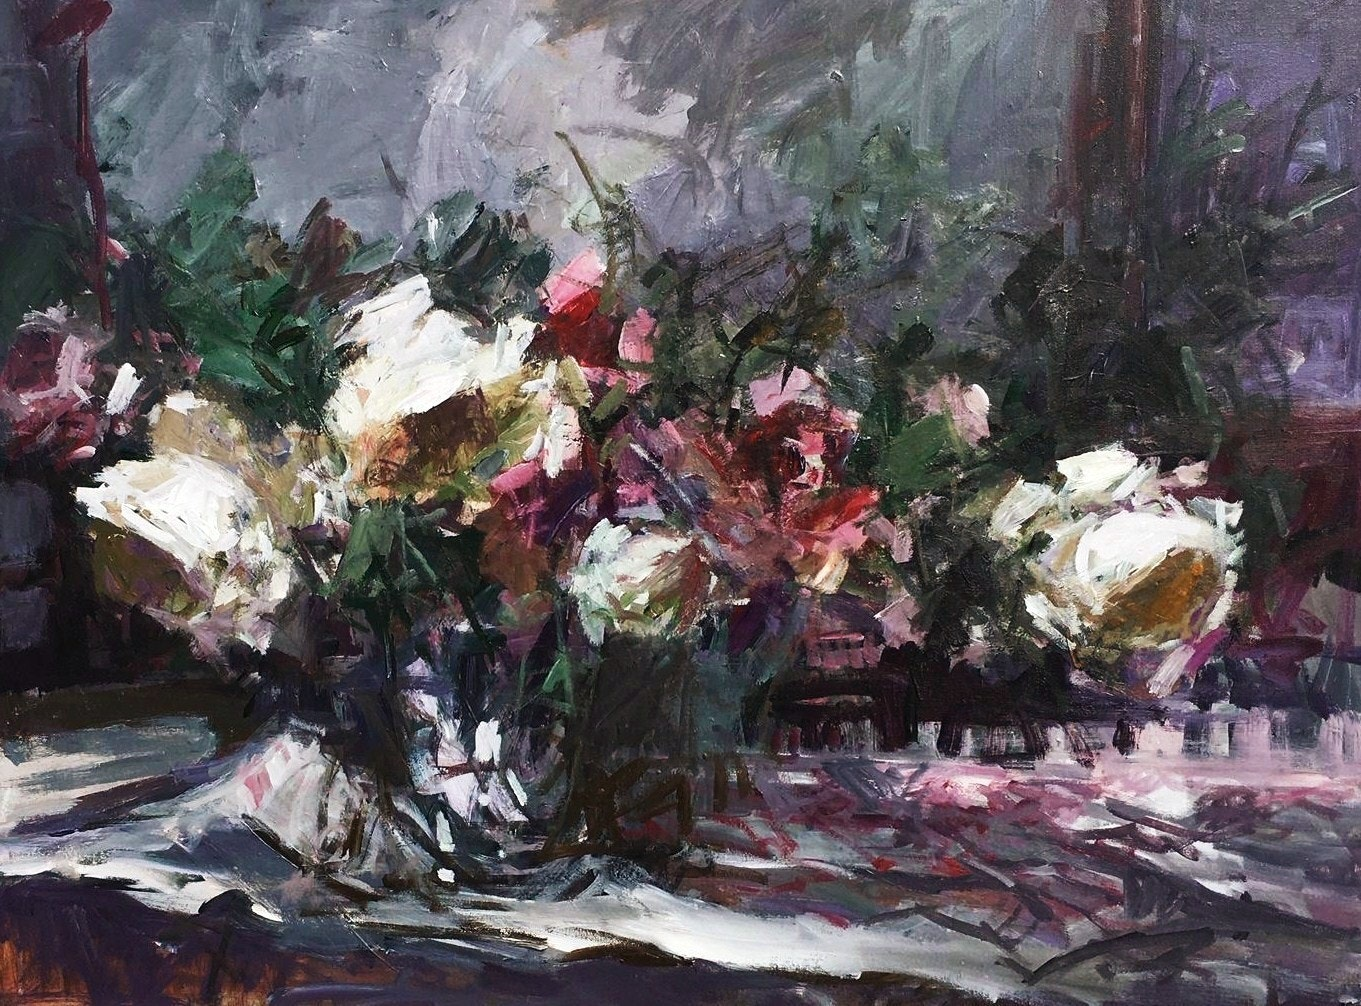 'Sunshine and summer roses', Parastoo Ganjei, Acrylic, 76 x 101 cm